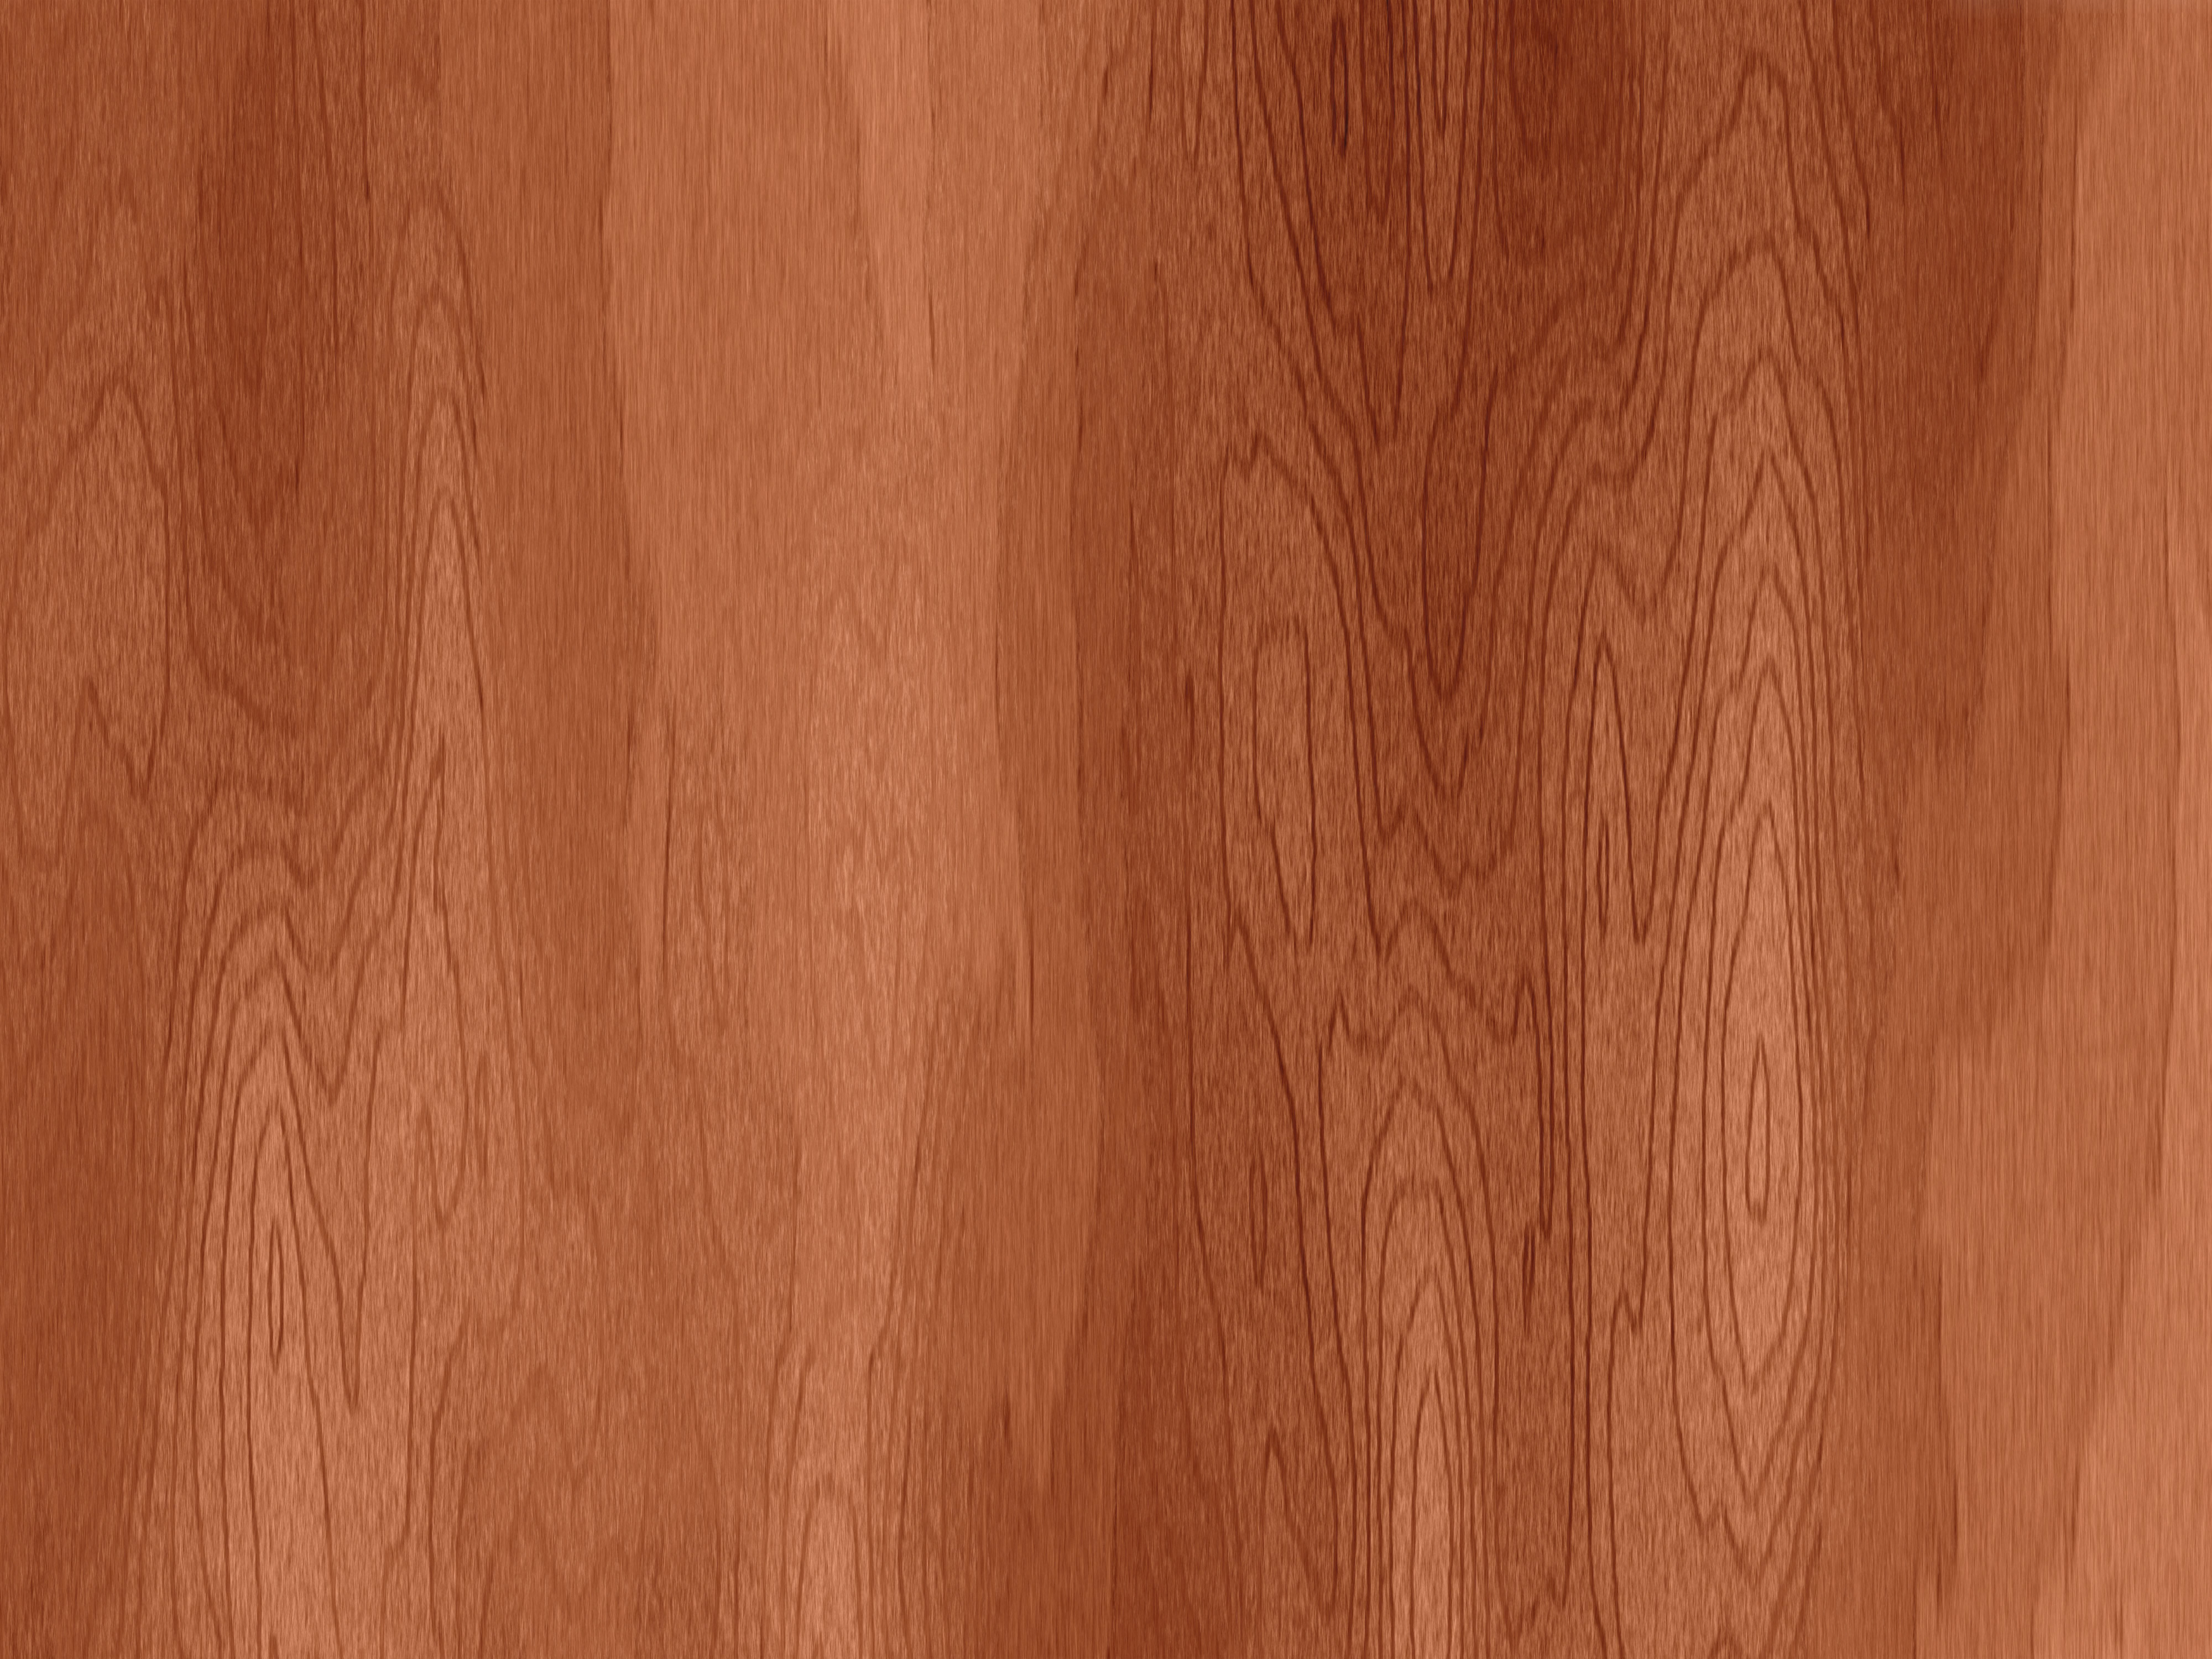 light brown wooden texture, wood, texture wood, download photo, background